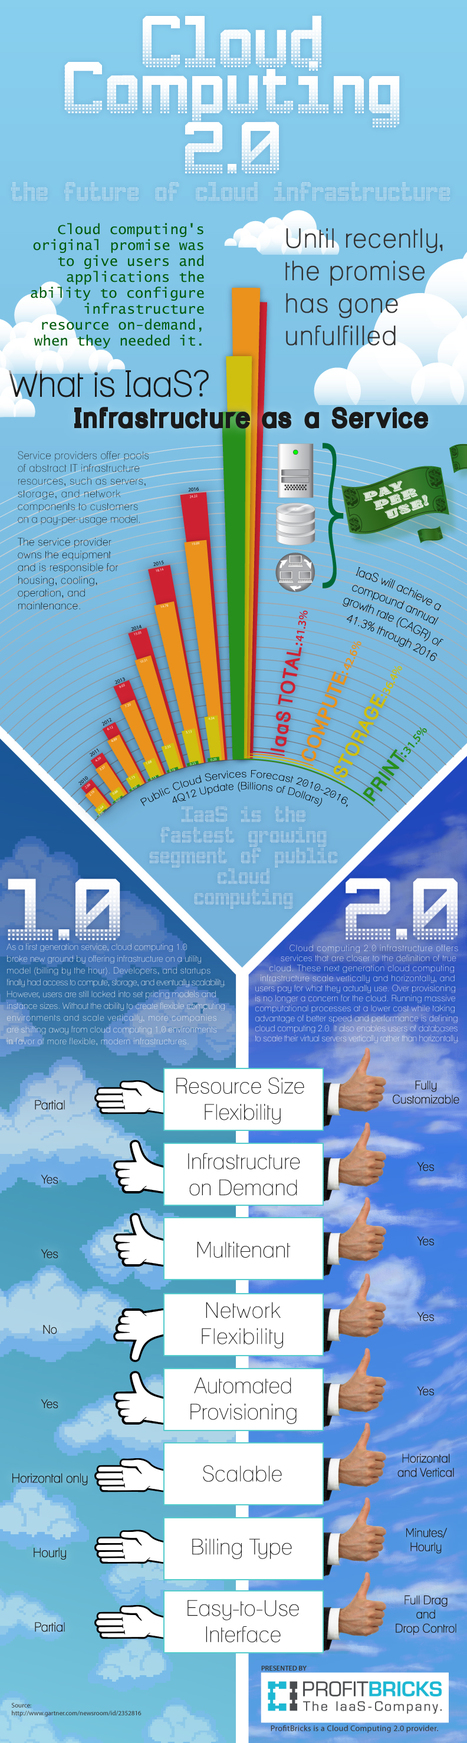 Infographic\' in Web 2.0 for juandoming | Scoop.it